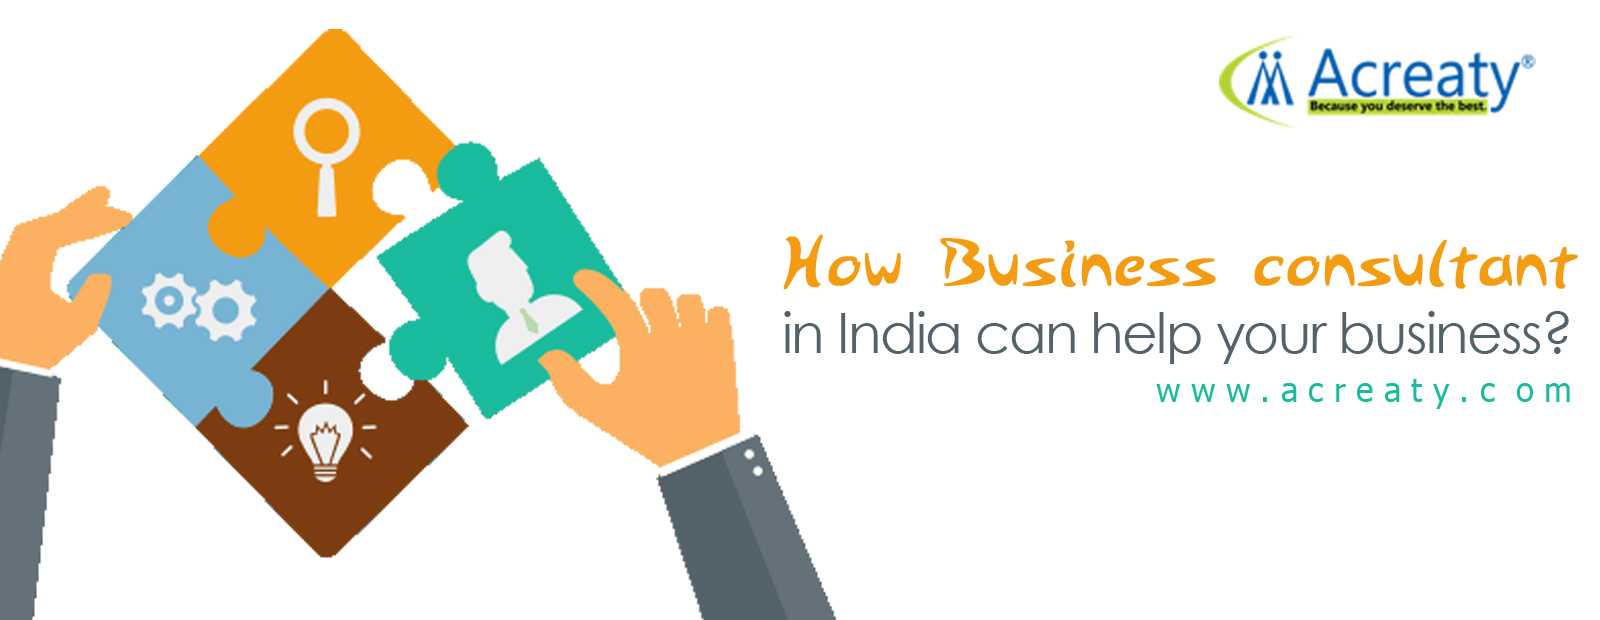 How Business consultant in India can help your business?